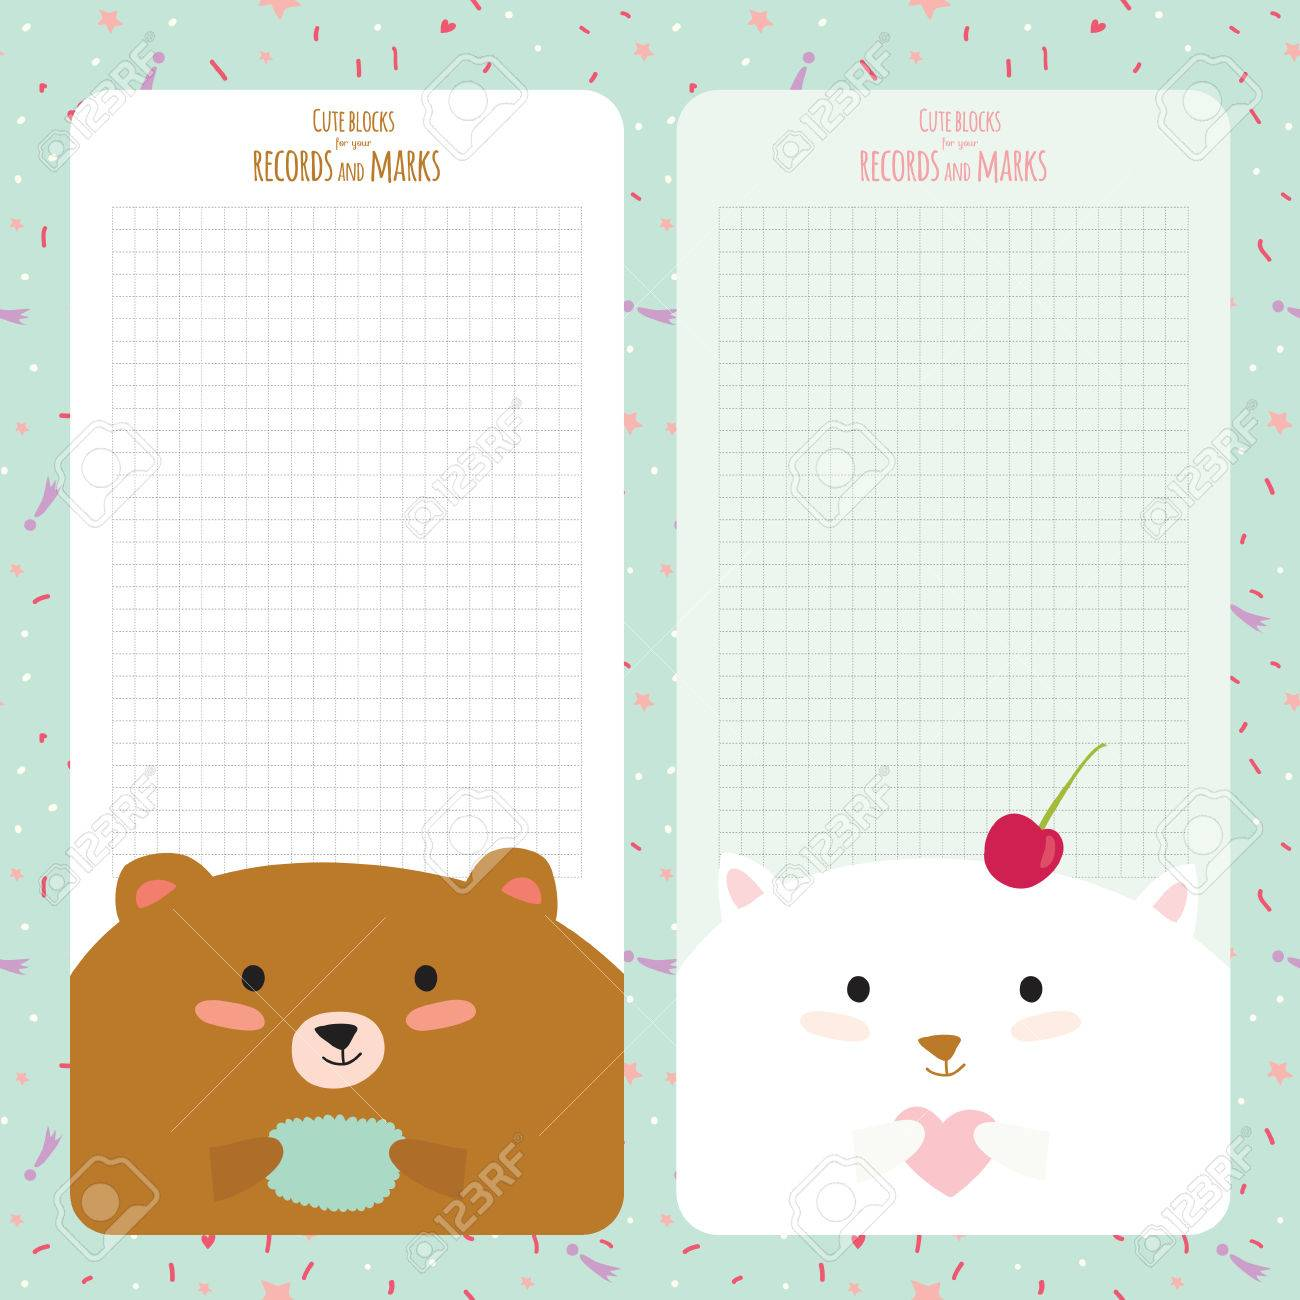 image regarding Cute Printable Notebook Paper named Vector layout materials for laptop, diary, stickers and other..